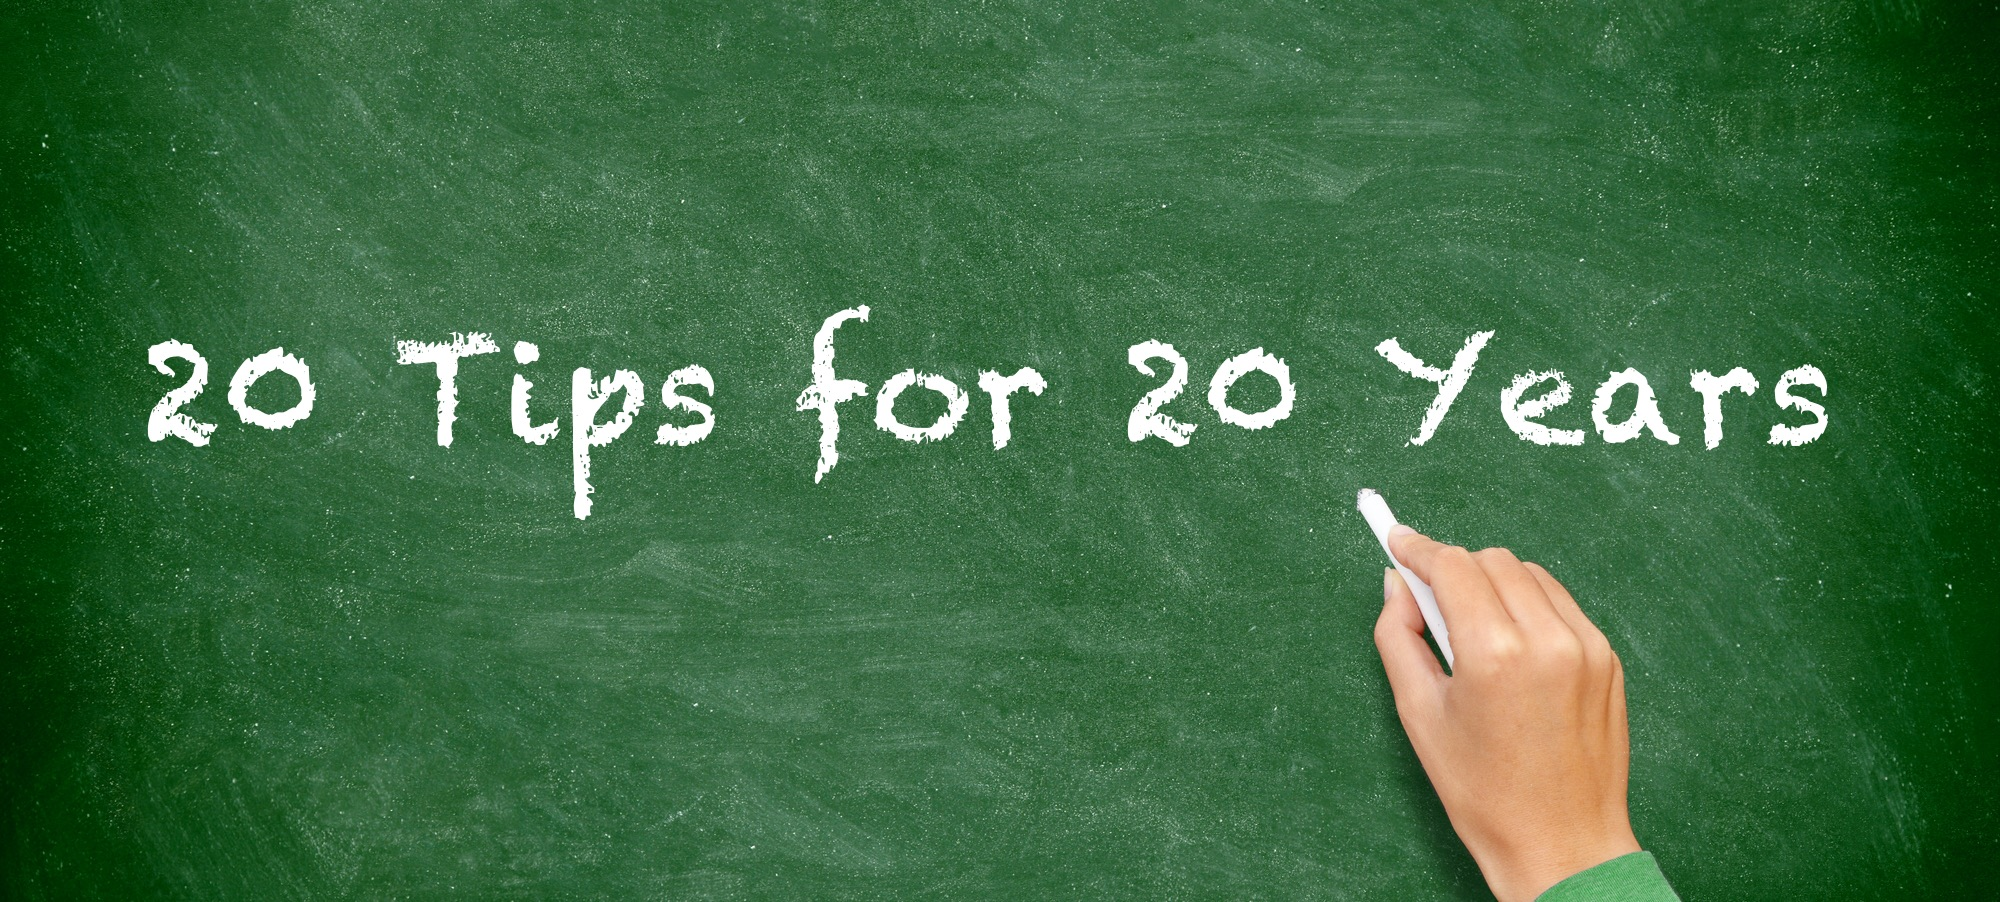 20 Tips for 20 Years